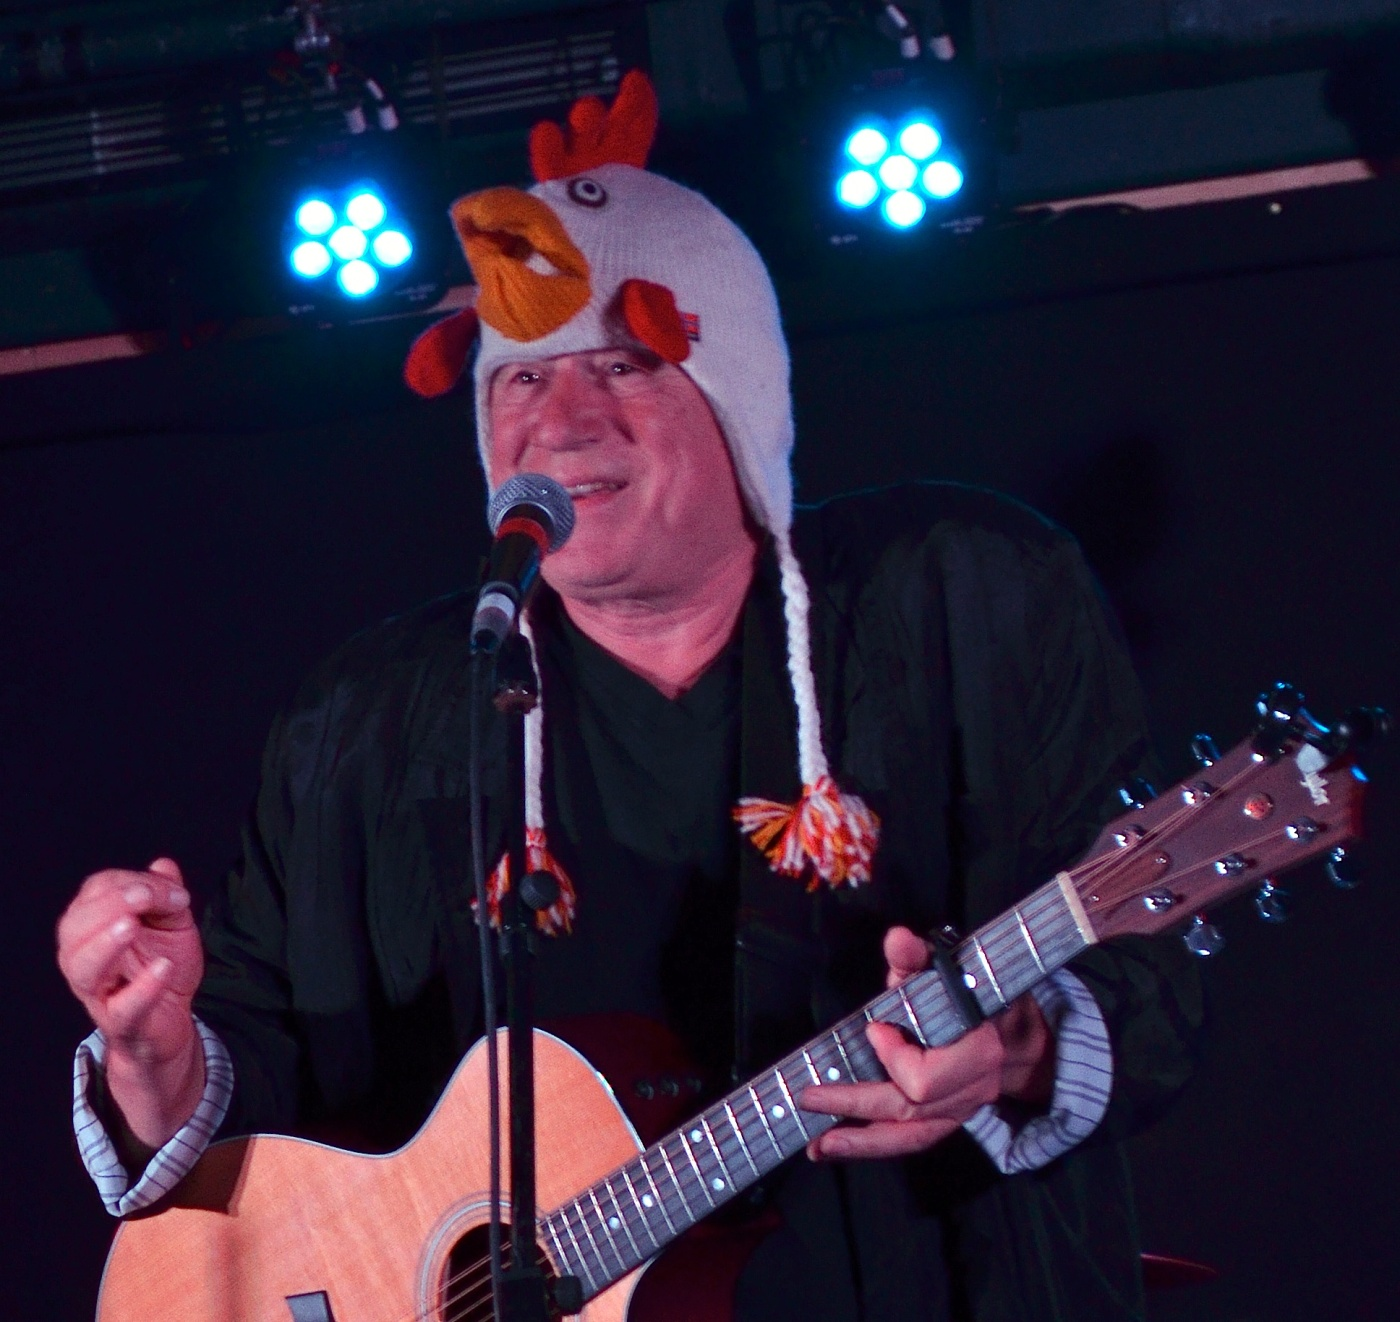 Neil Innes at The Fermain Tavern